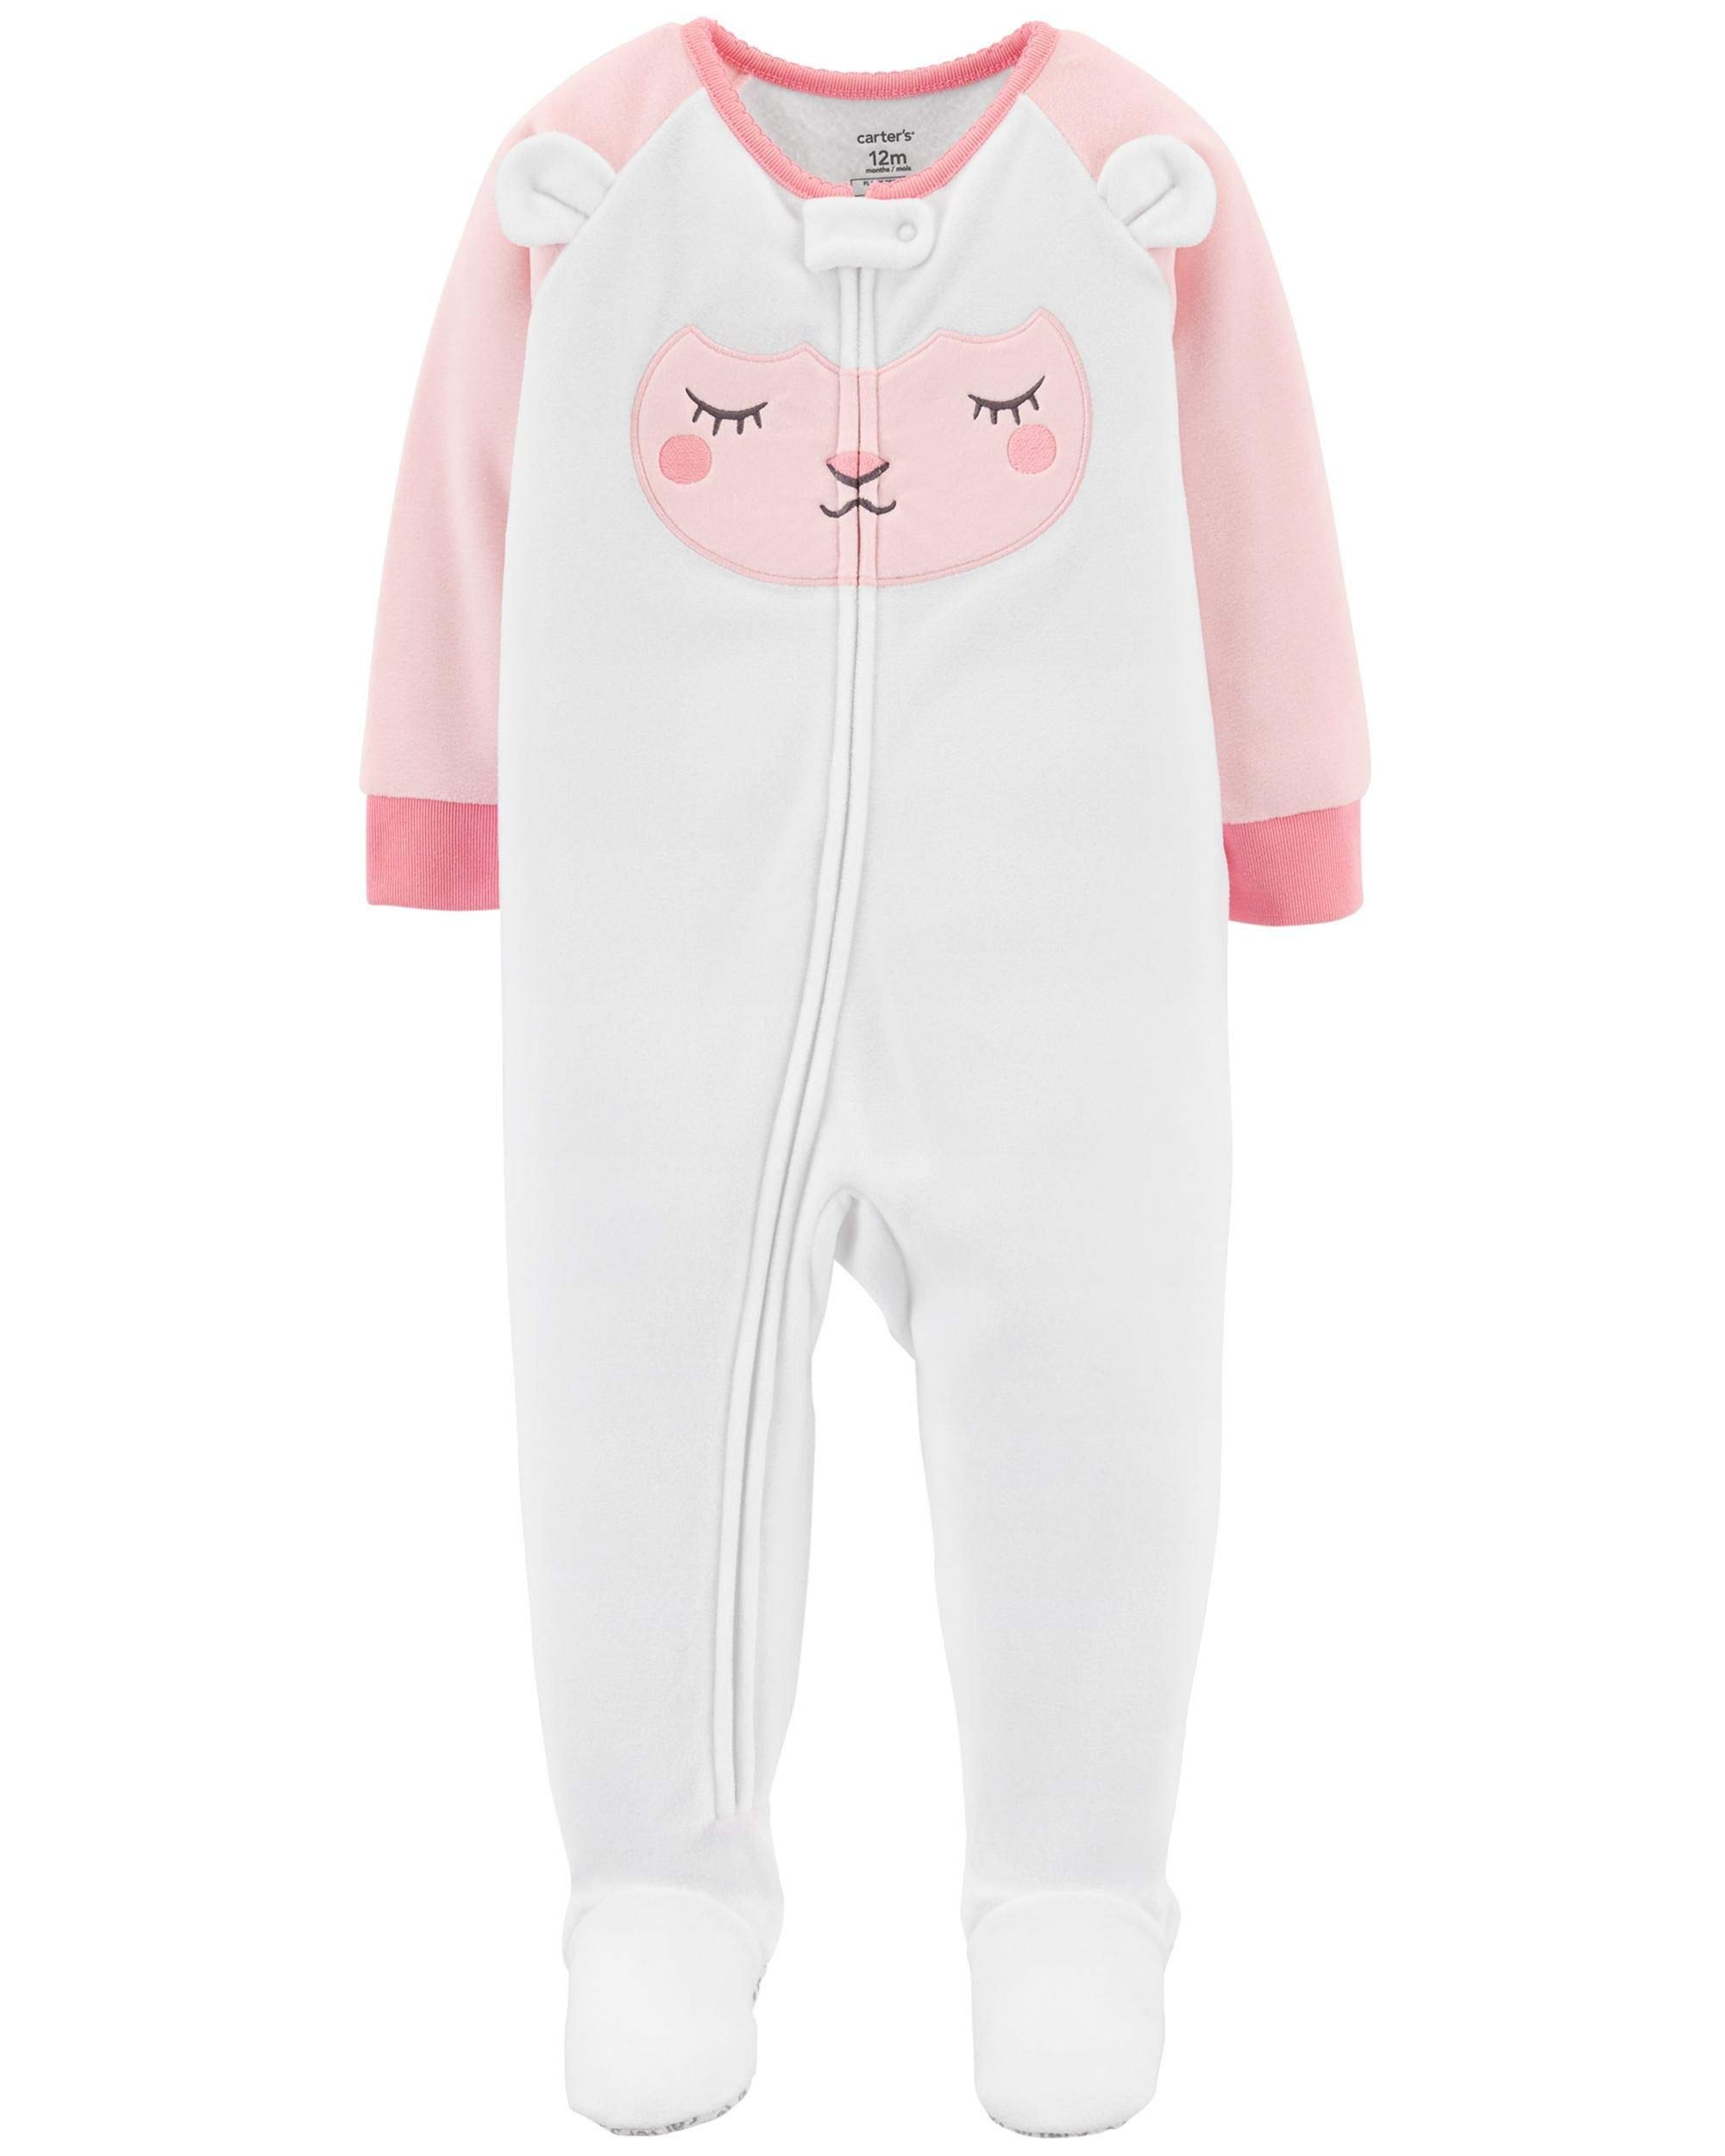 Galleon - Carter s Baby Girl s 12M-5T One Piece Fleece Pajamas 9e6ef3a09